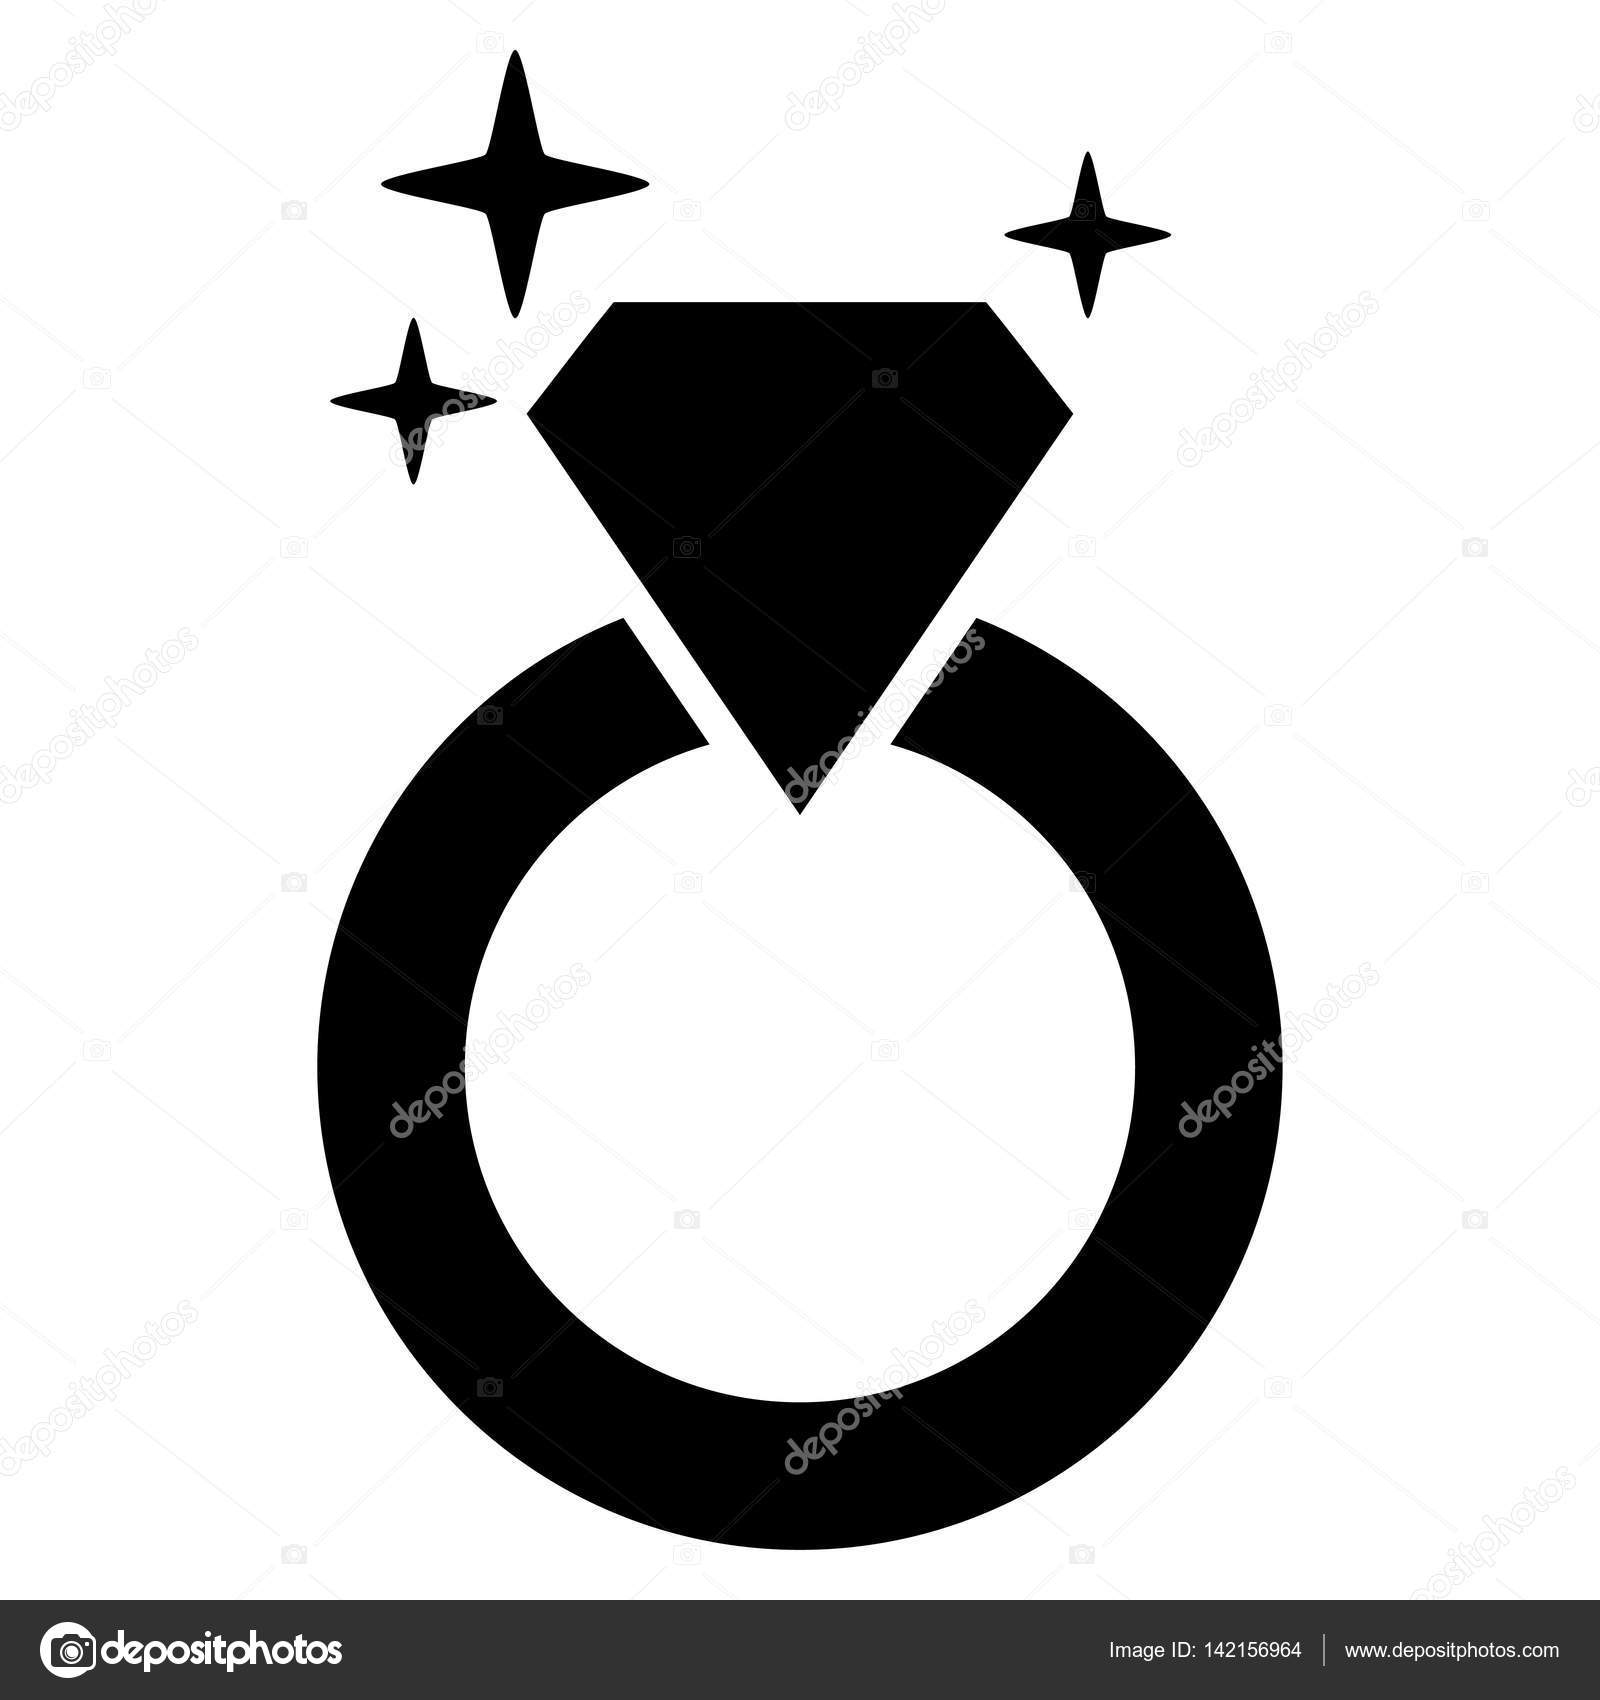 diamond ring vector icon - photo #16